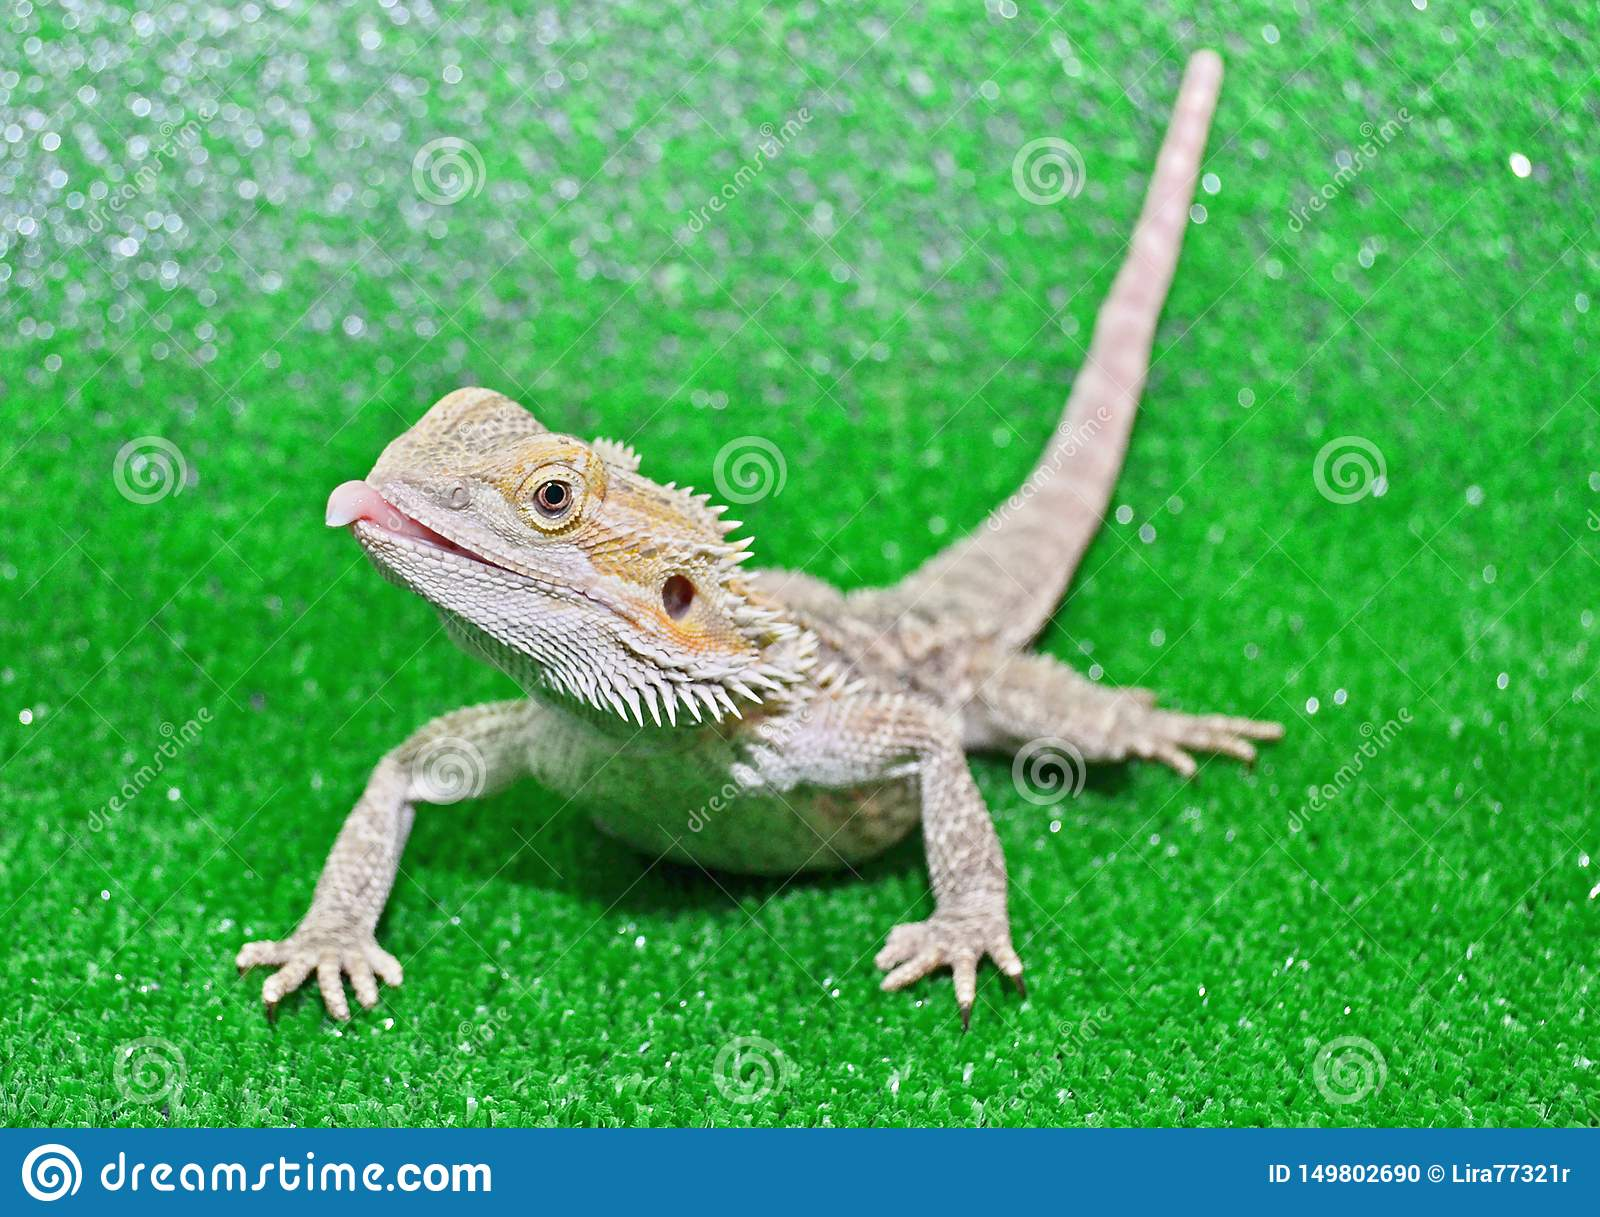 Bearded agama on a green background